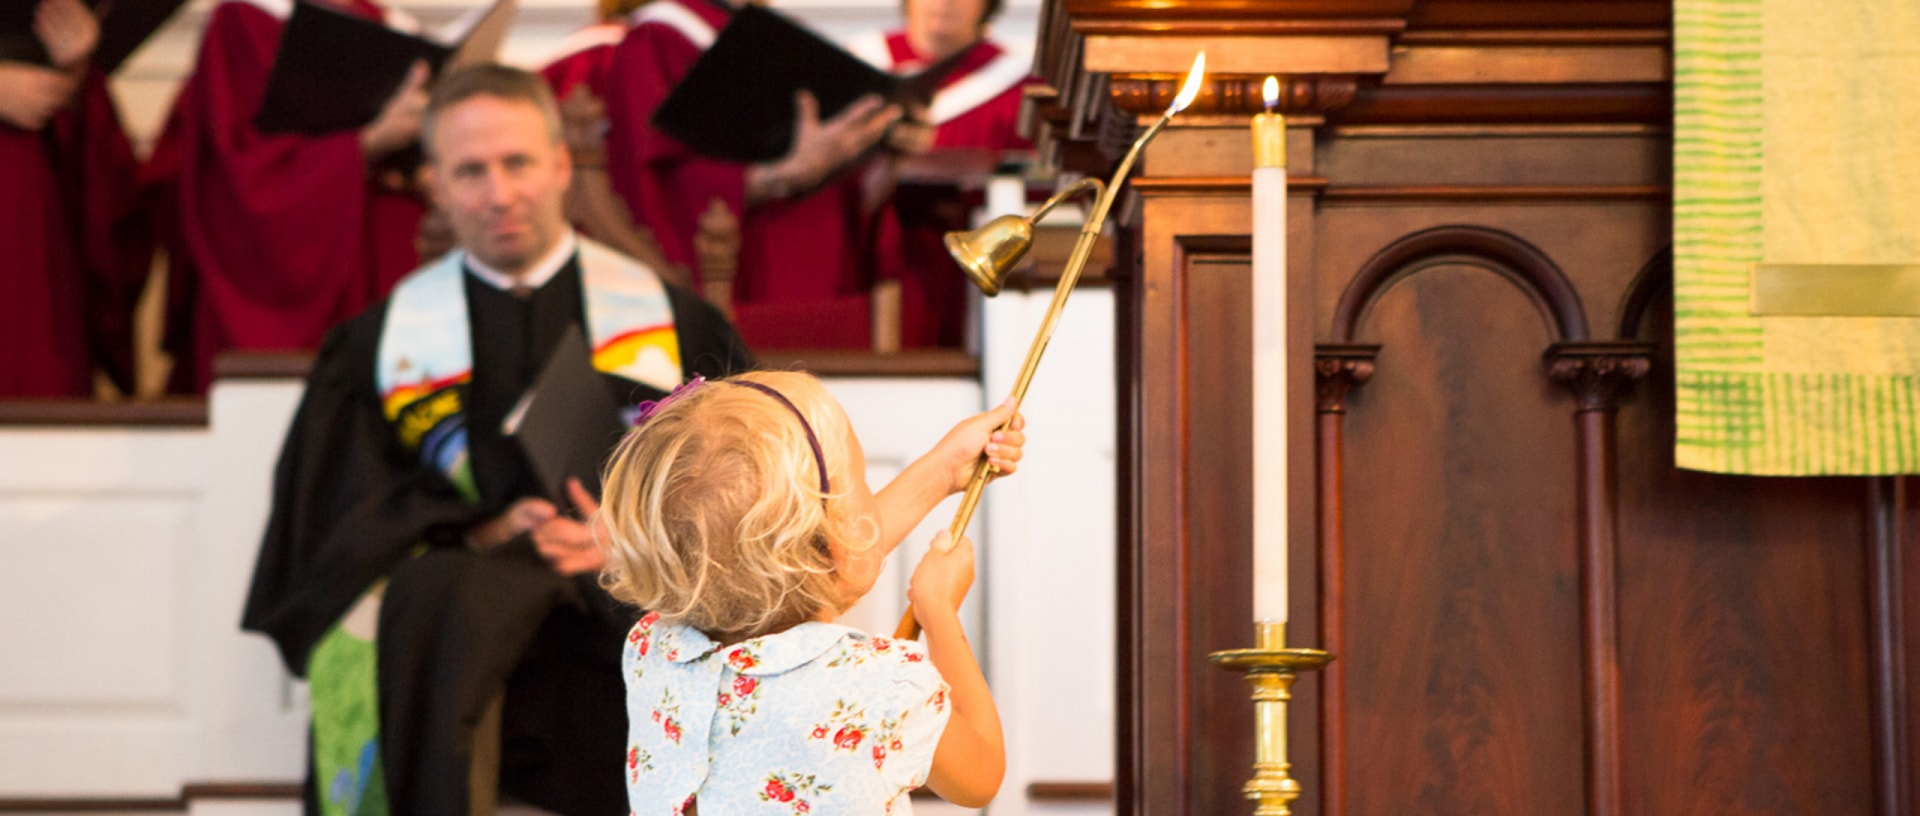 A young girl lights a candle to begin worship